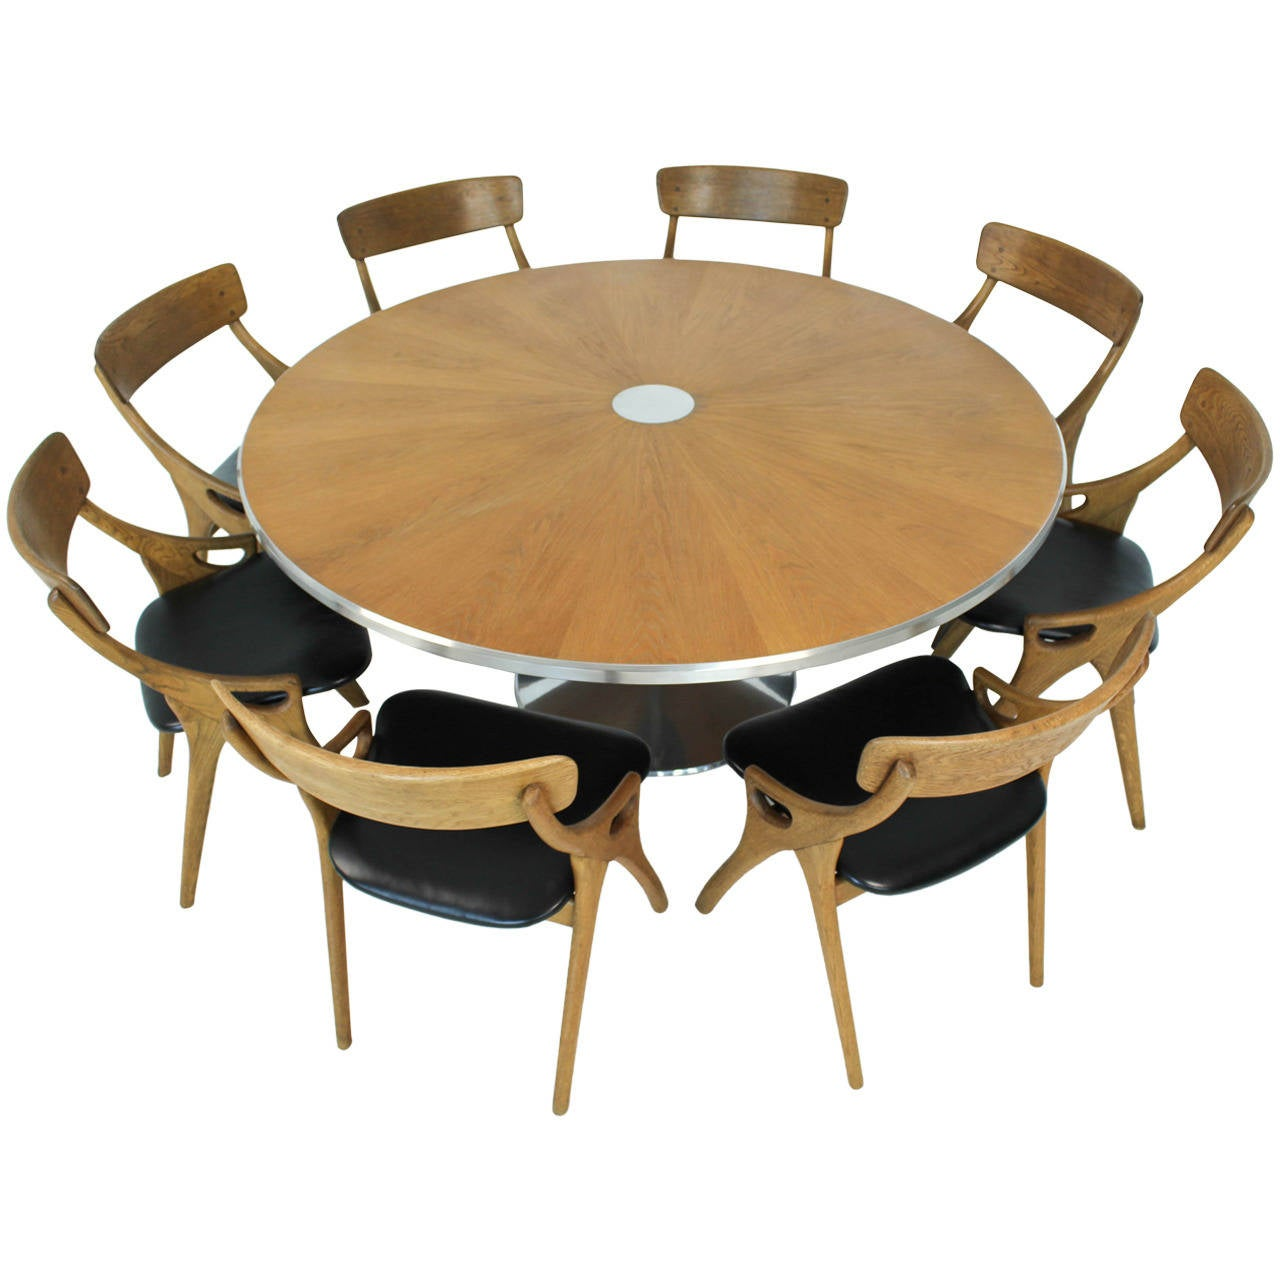 Mid century modern pedestal dining table by poul cadovius at 1stdibs